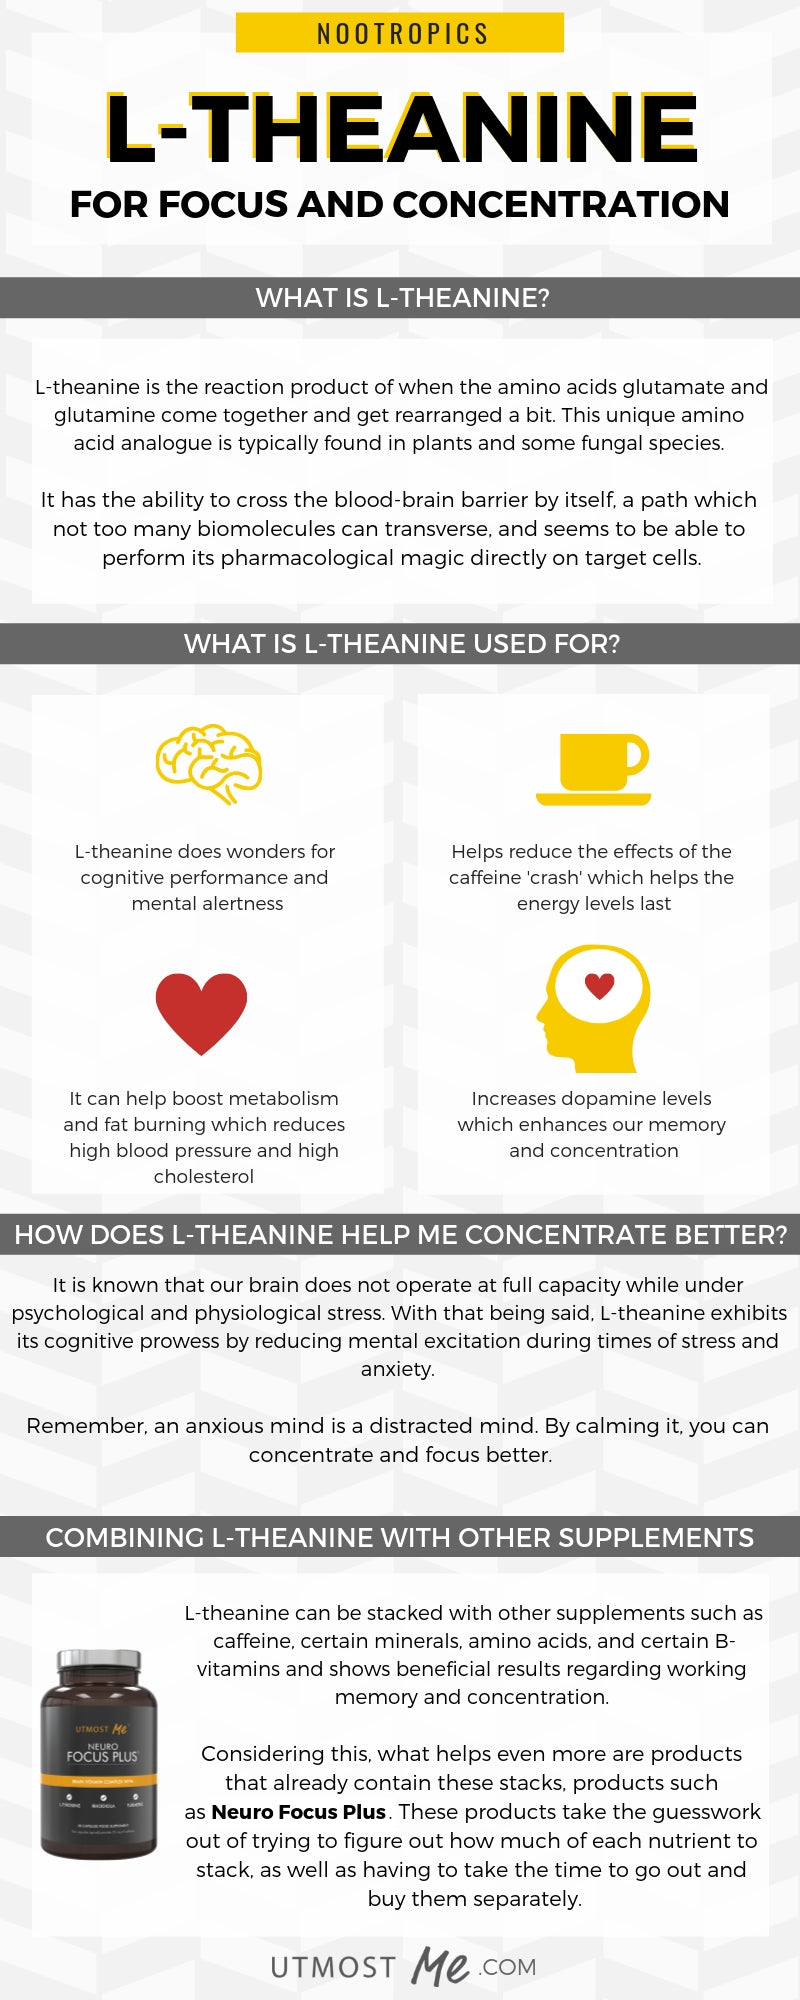 Infographic - L-Theanine for Focus and Concentration